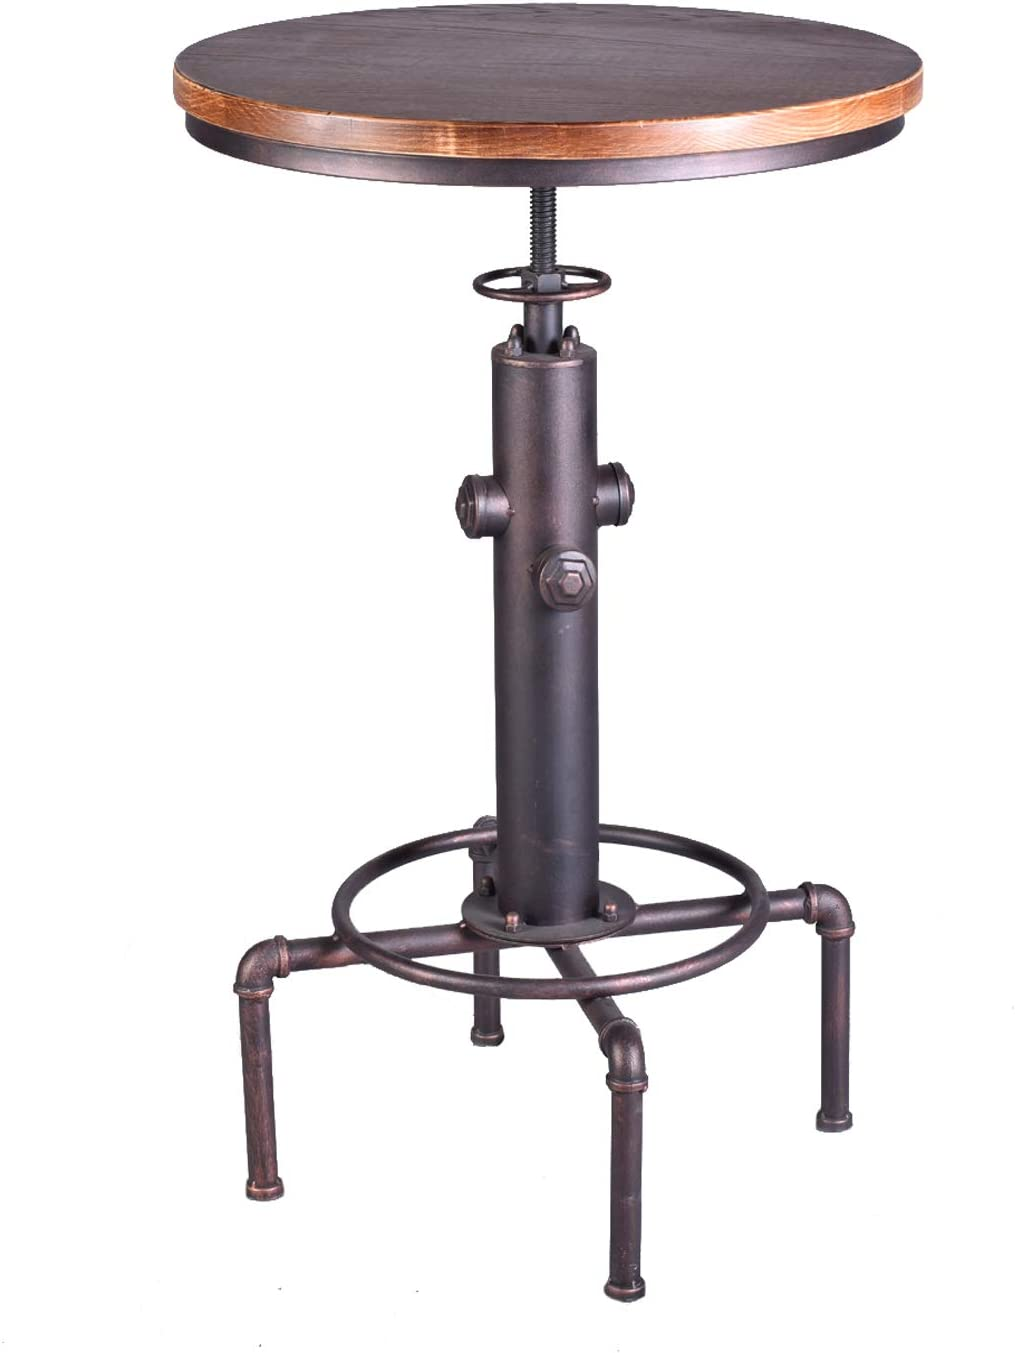 """TOPOWER Industrial Bar Table 31.5-41.3"""" Adjustable Pub Table Kitchen Dining Coffee Bistro Table (Bronze): Kitchen & Dining"""